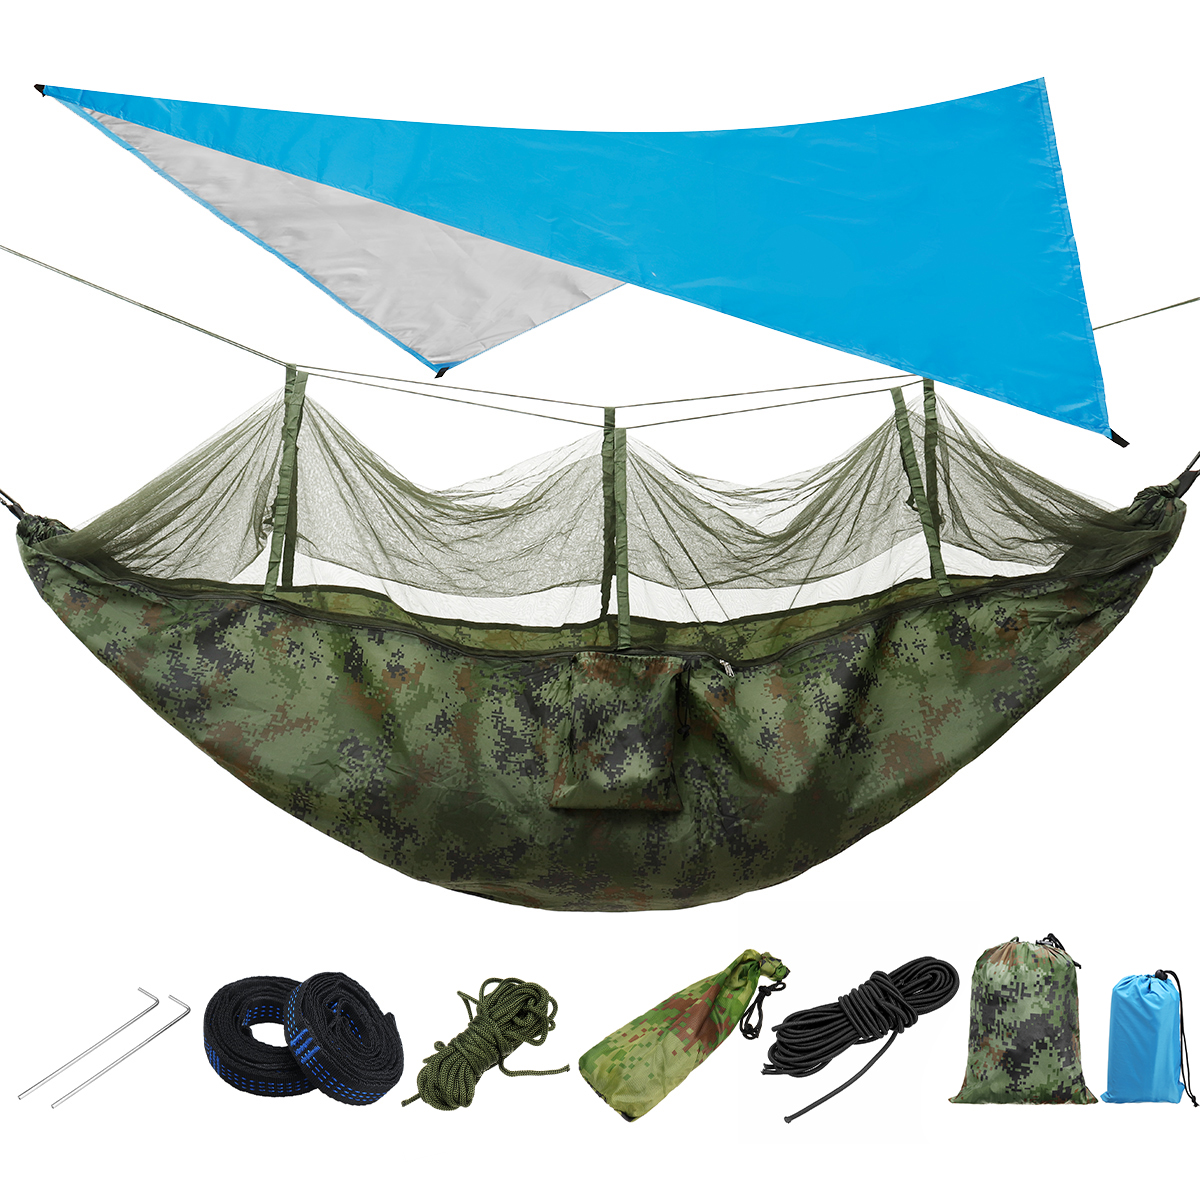 2 Person Travel Double Hanging Bed Outdoor Camping Hammock Tent Mosquito Net Set